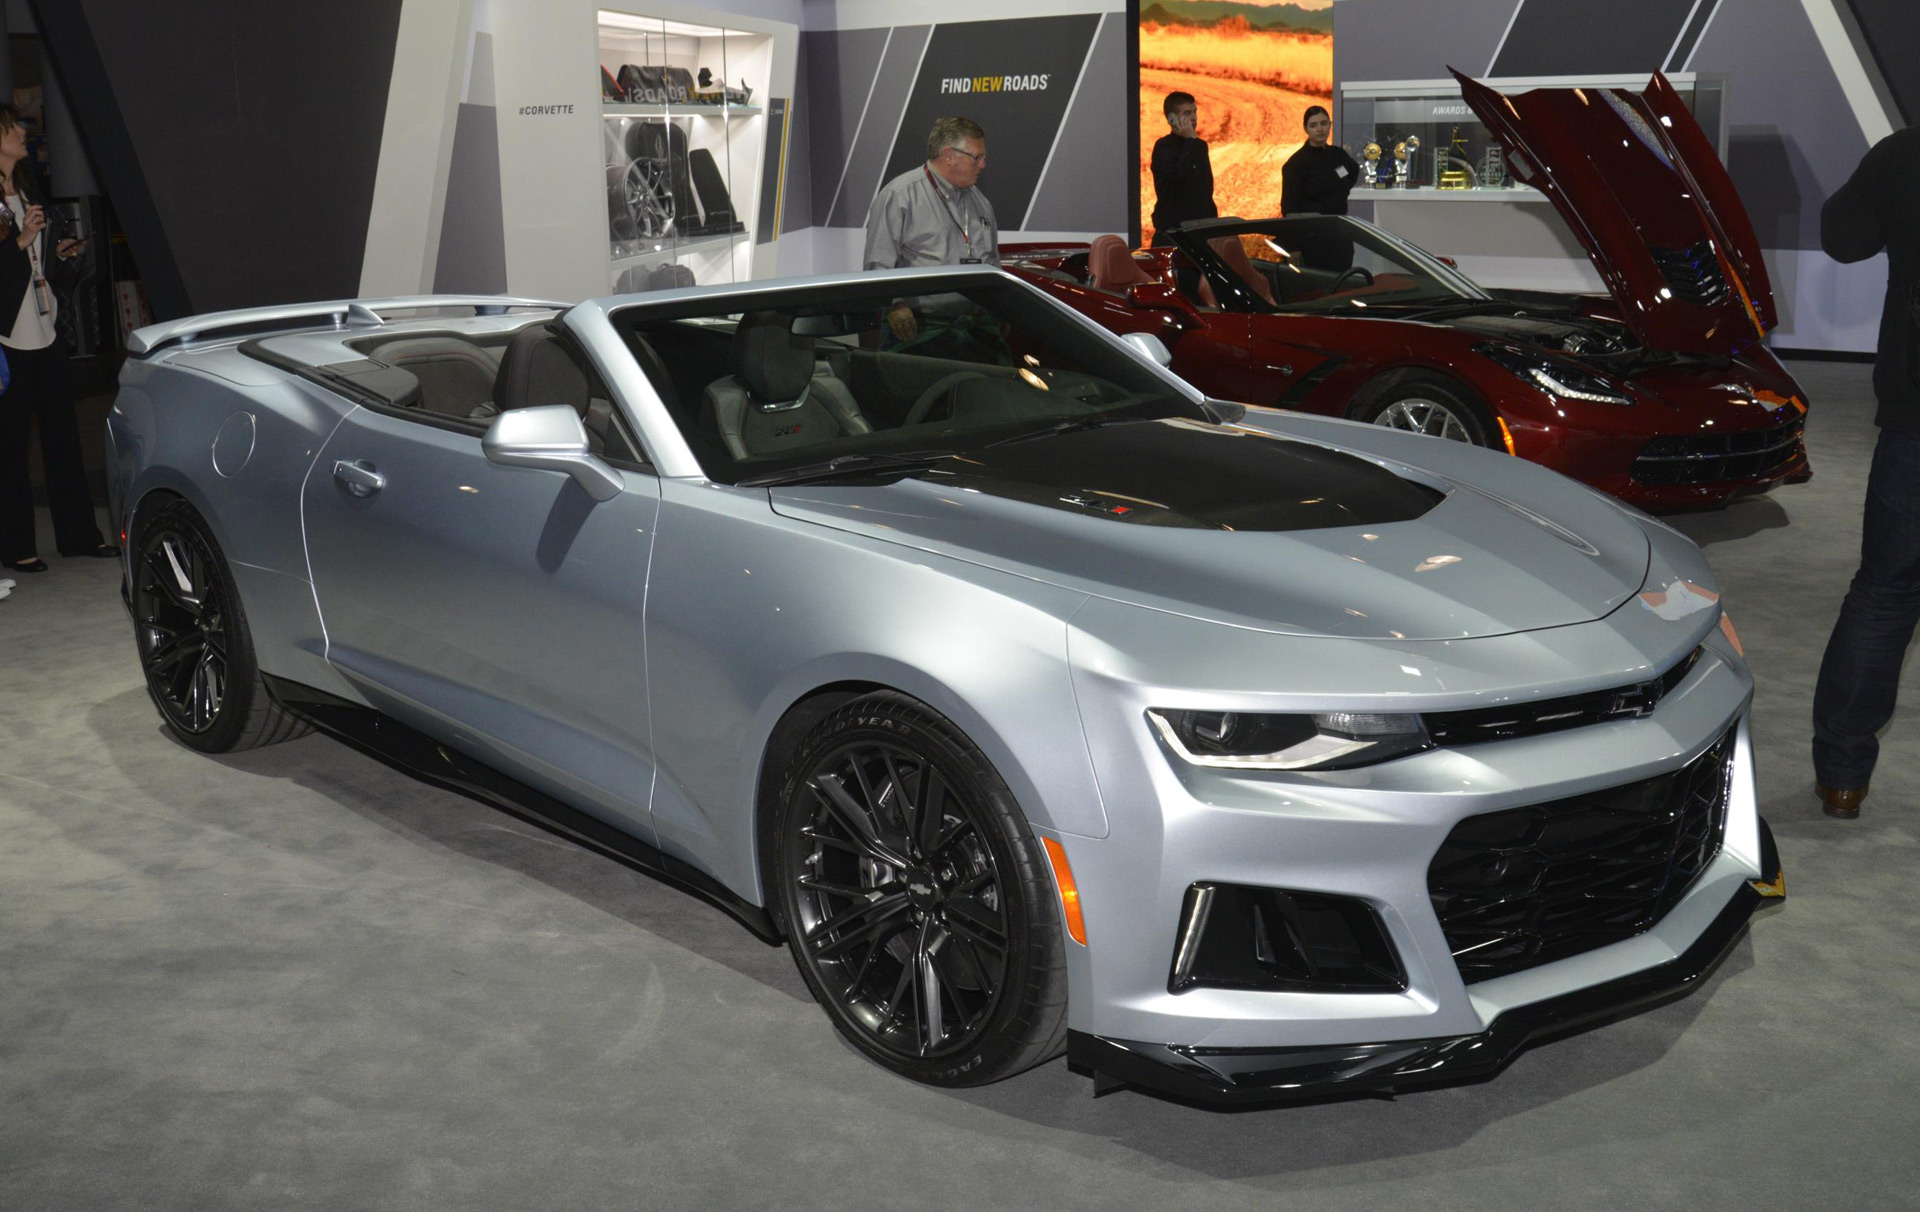 2017 Chevrolet Camaro Zl1 Convertible Debuts In New York